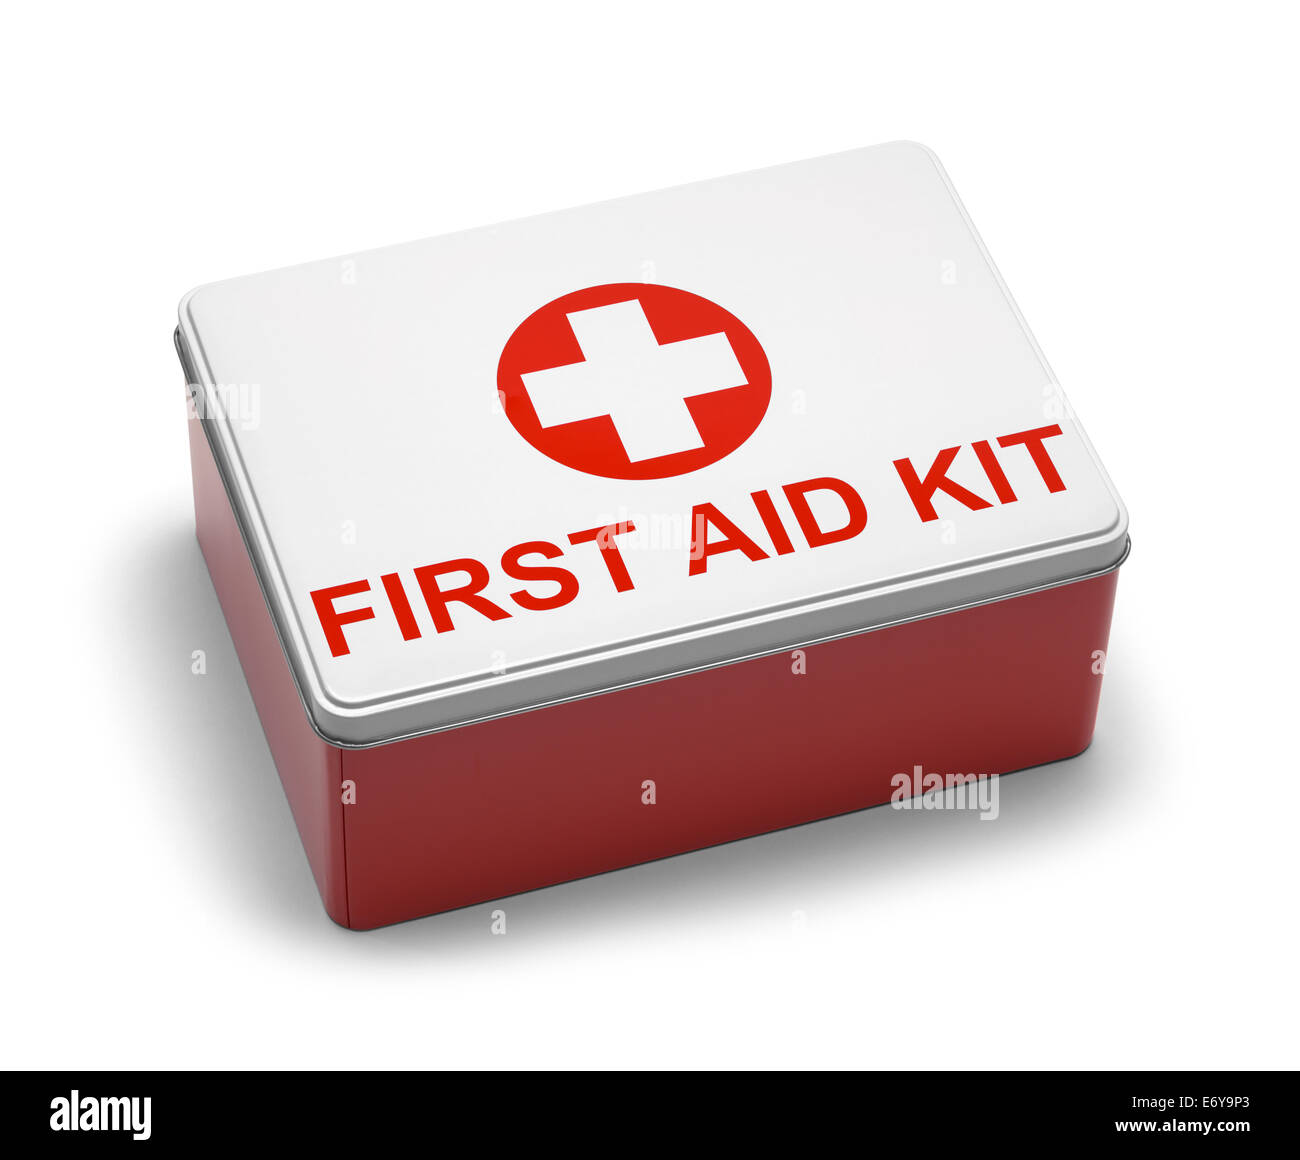 Red and White Metal First Aid Kit Box. Isolated on White Background. - Stock Image